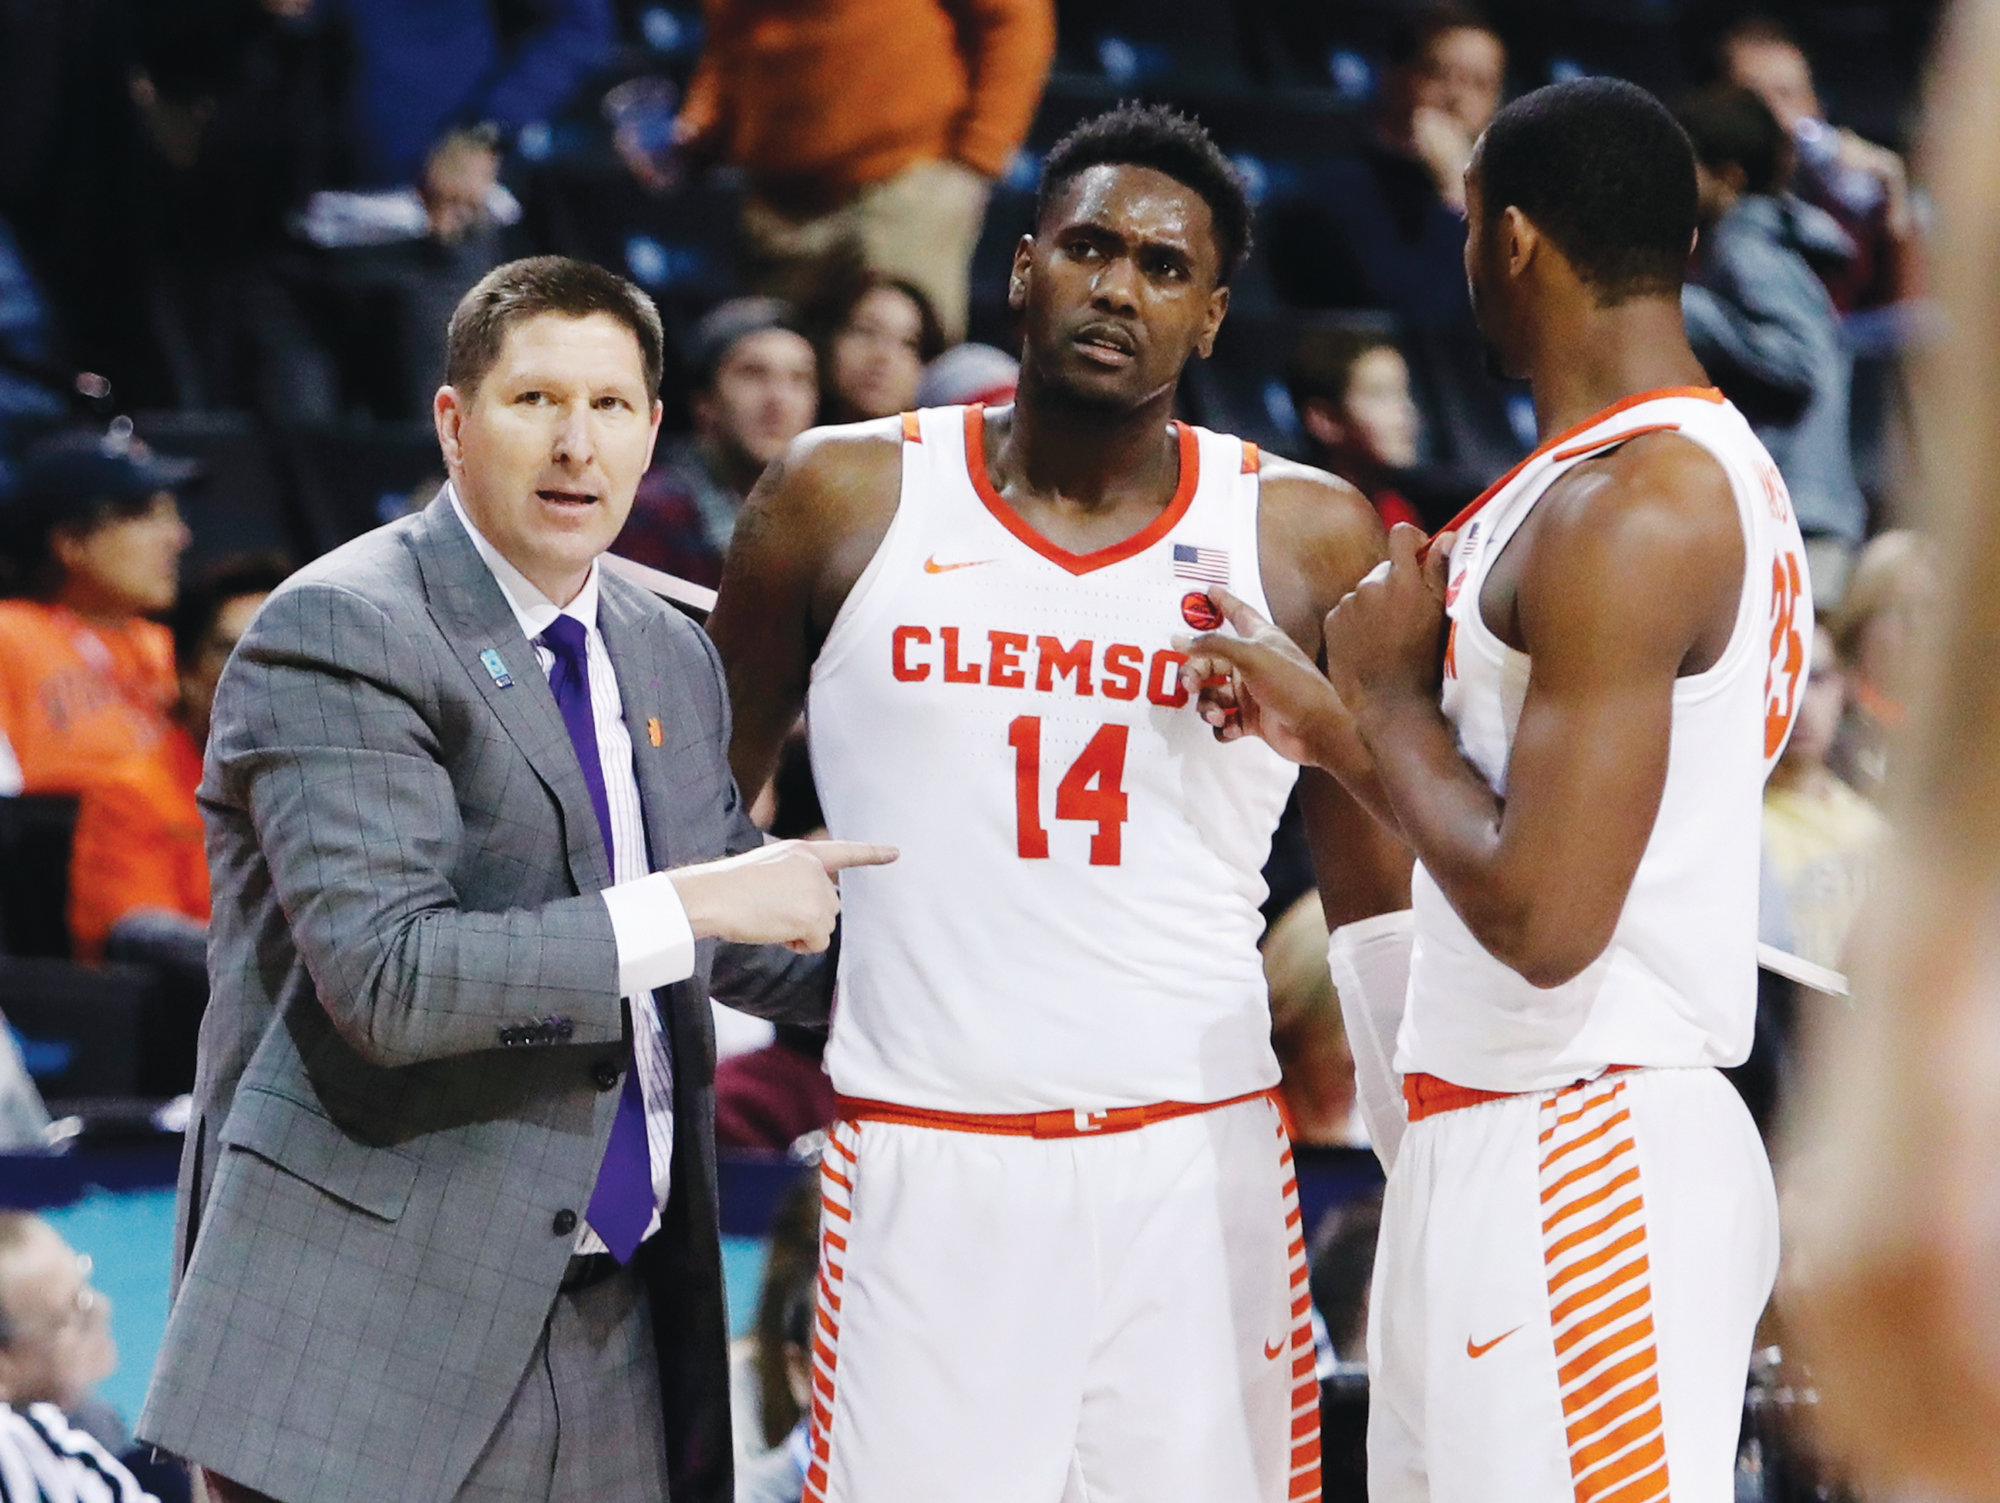 Clemson men's basketball head coach Brad Brownell, left, hopes a mixture of veterans like Elijah Thomas (14) and Aamir Simms (25) along with some talented newcomers will help the Tigers build upon the success they enjoyed last season.